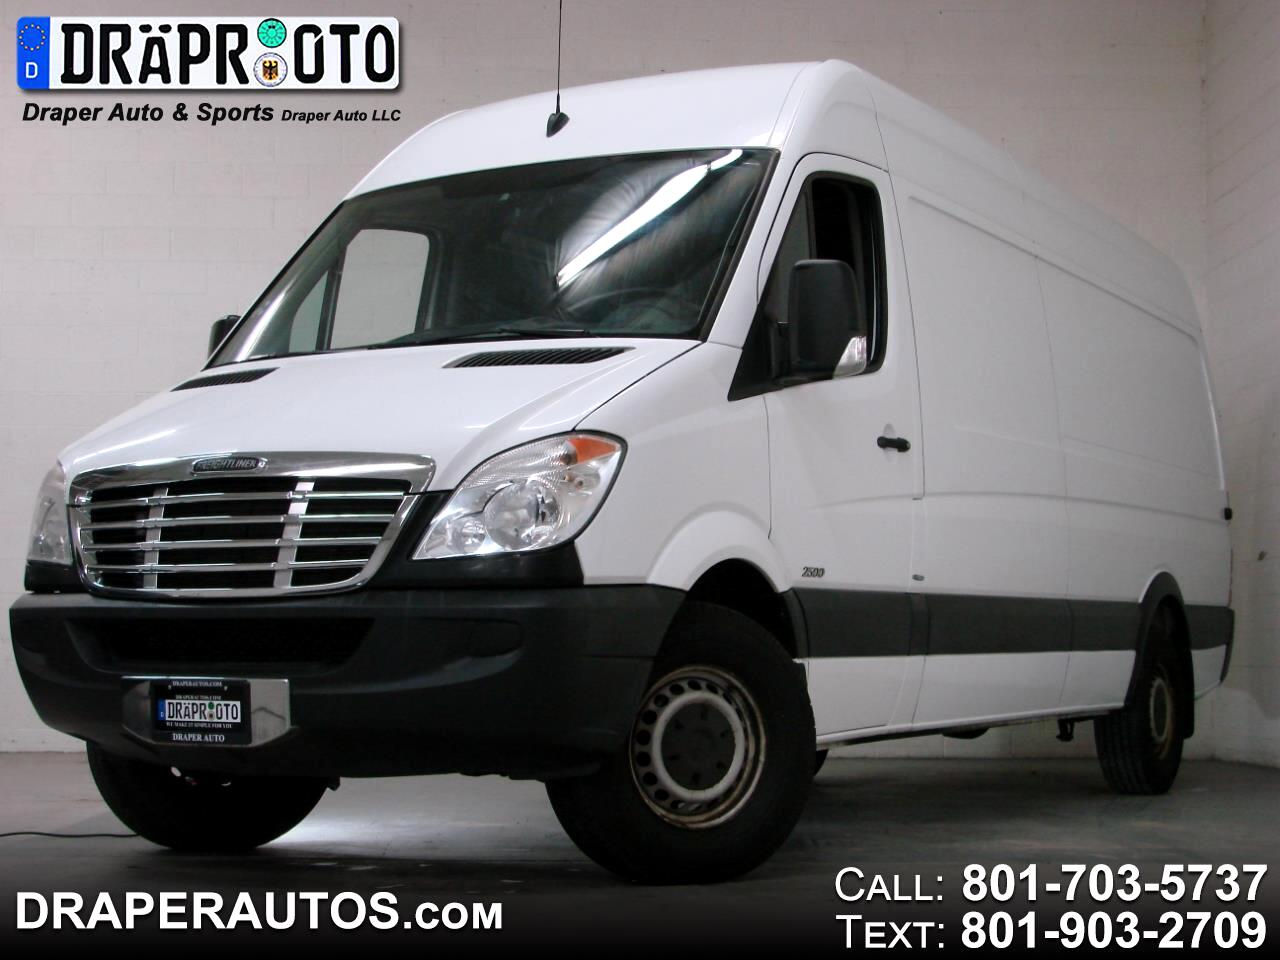 2011 Mercedes-Benz Sprinter Cargo Vans 2500 170""